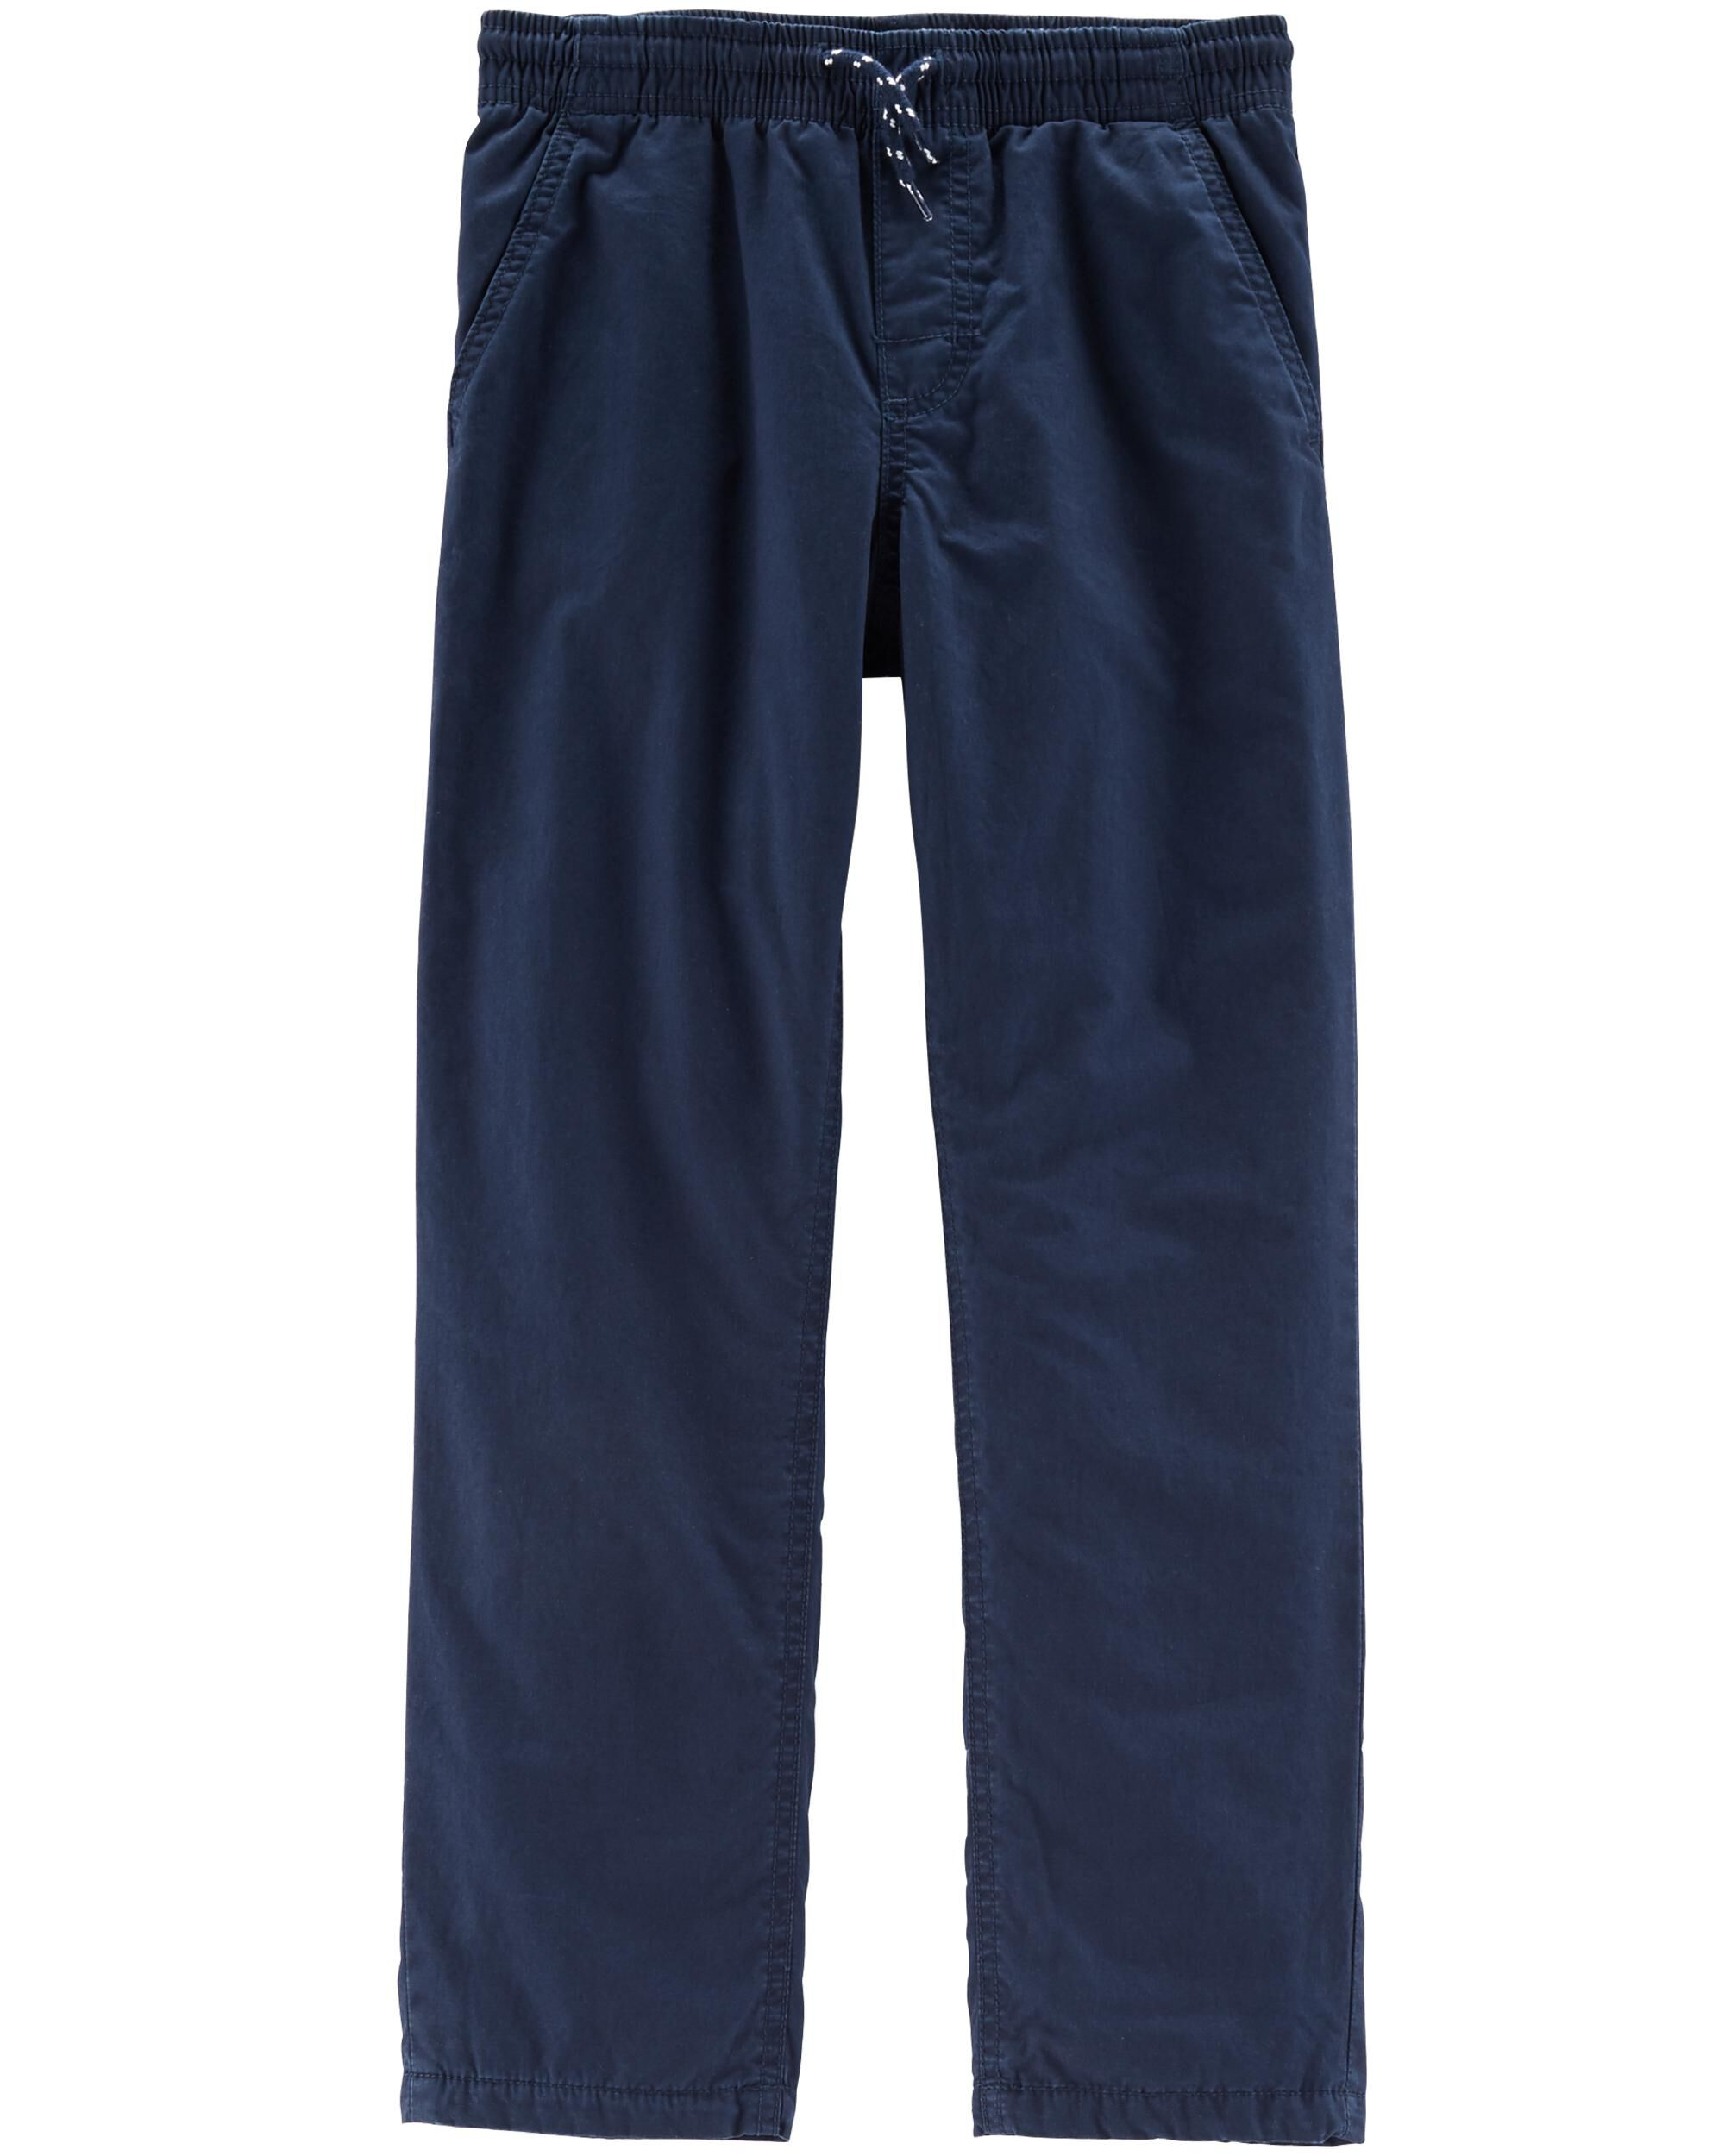 Only Uniform Girls Pull Up Heart Pocket School Trousers Kids Schoolwear Pants UK